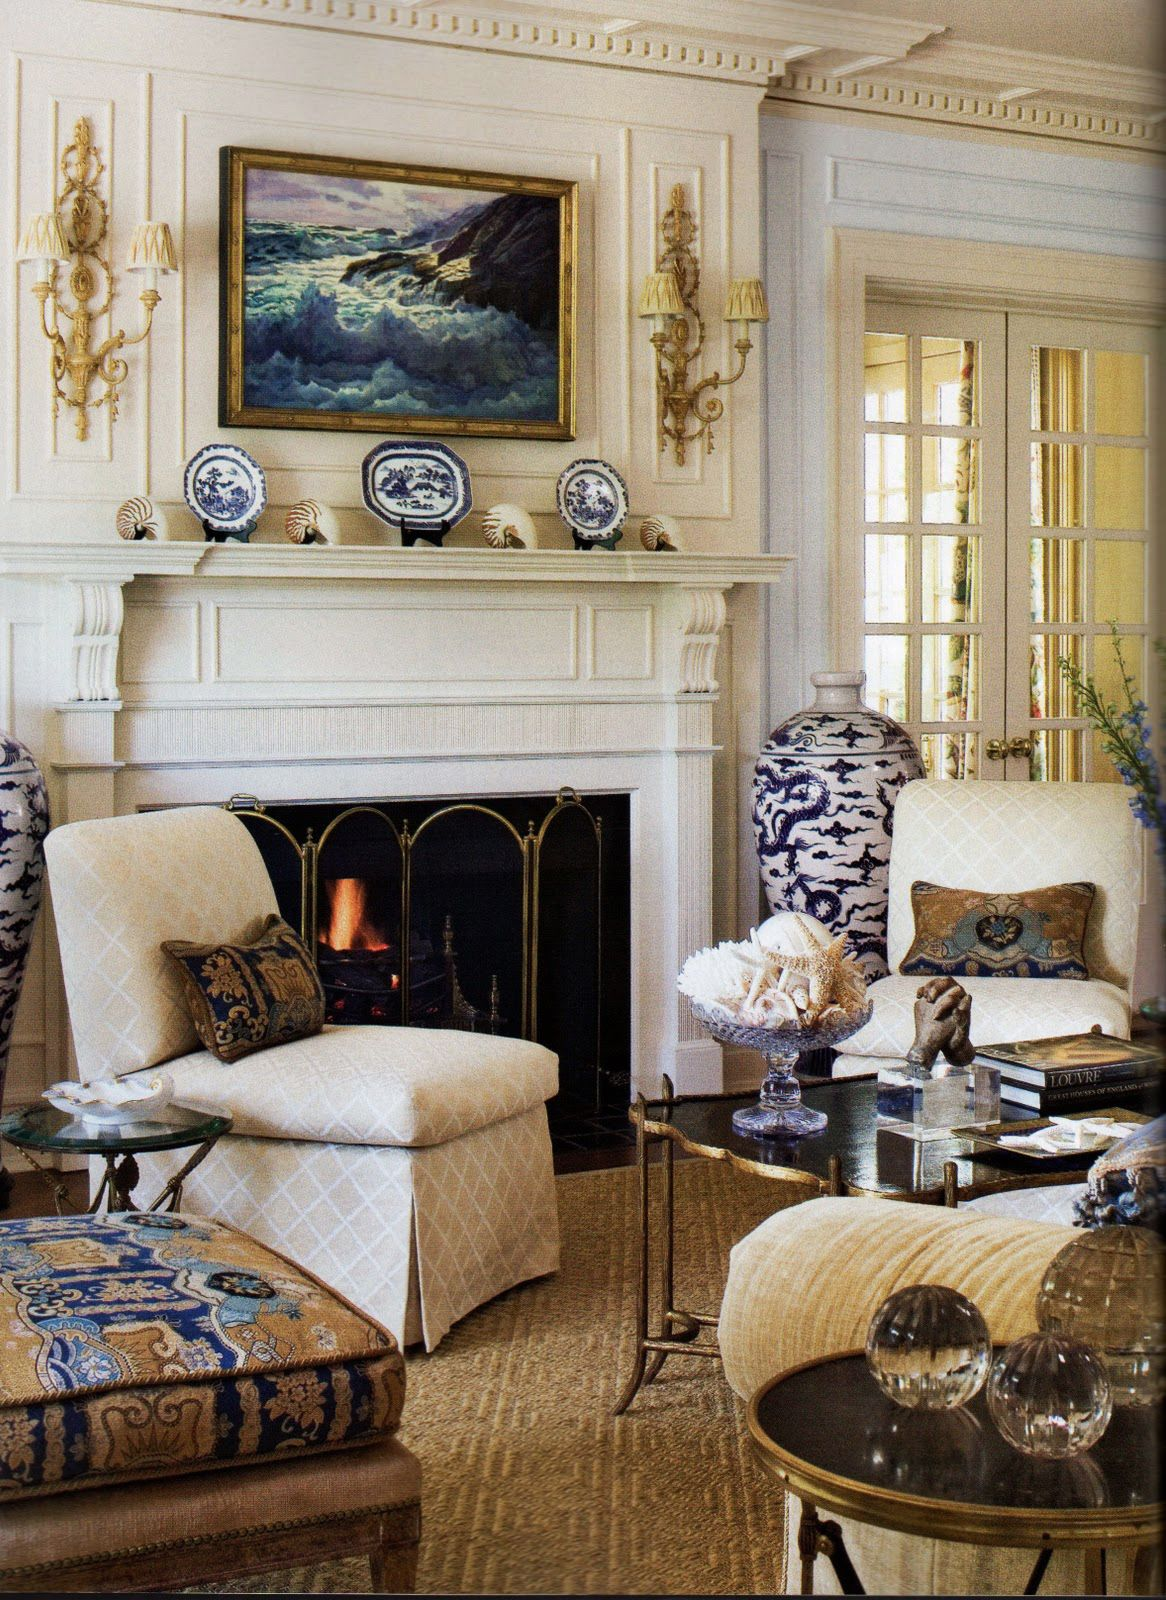 living room design with beautiful architectural details - dentil crown molding, wall panels, fireplace mantel, lovely Adam style sconces, decorated with blue accessories